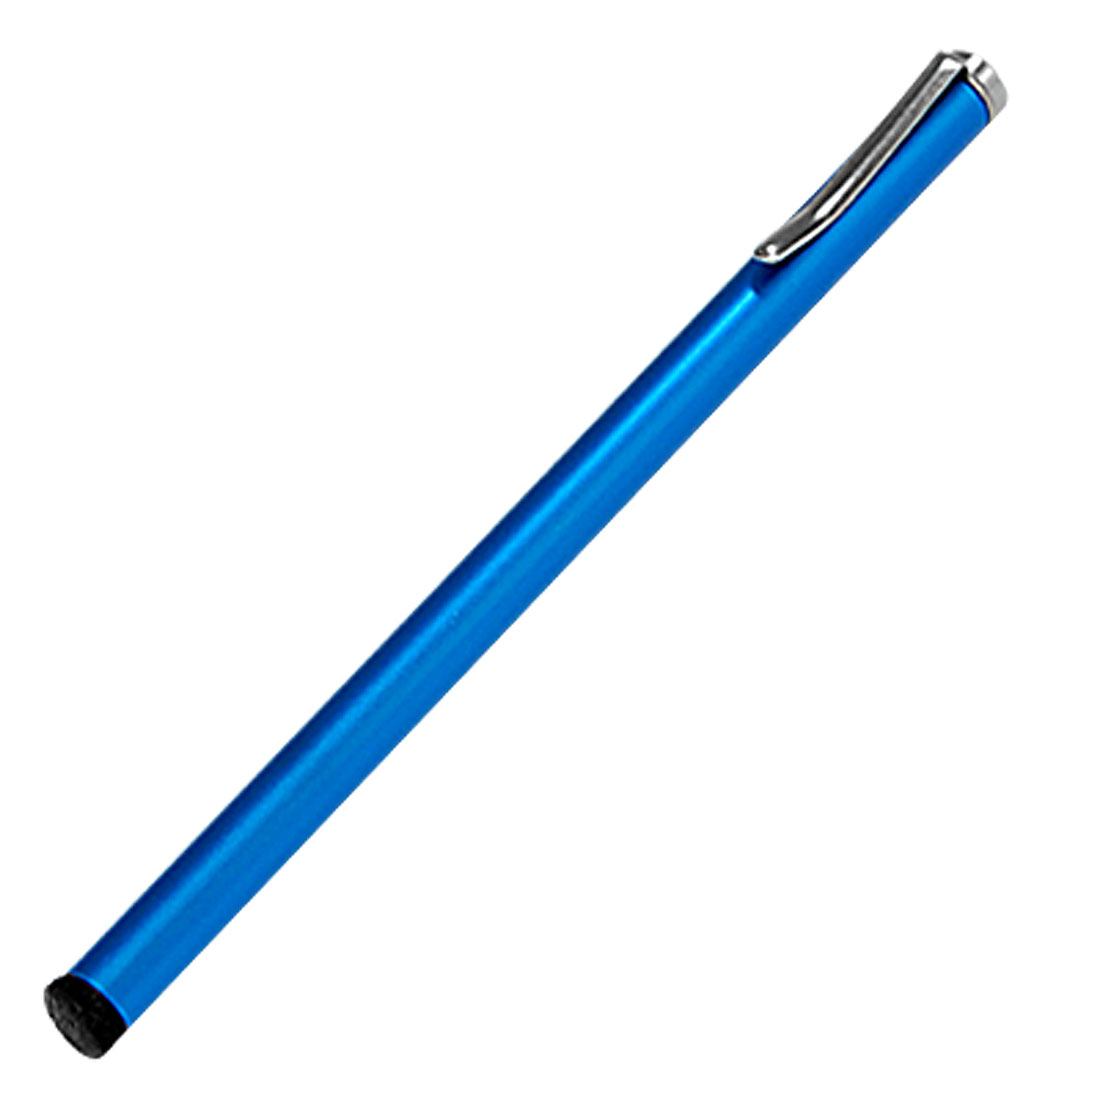 2pcs Blue Replacement Stylus Pen for Mobile Phone